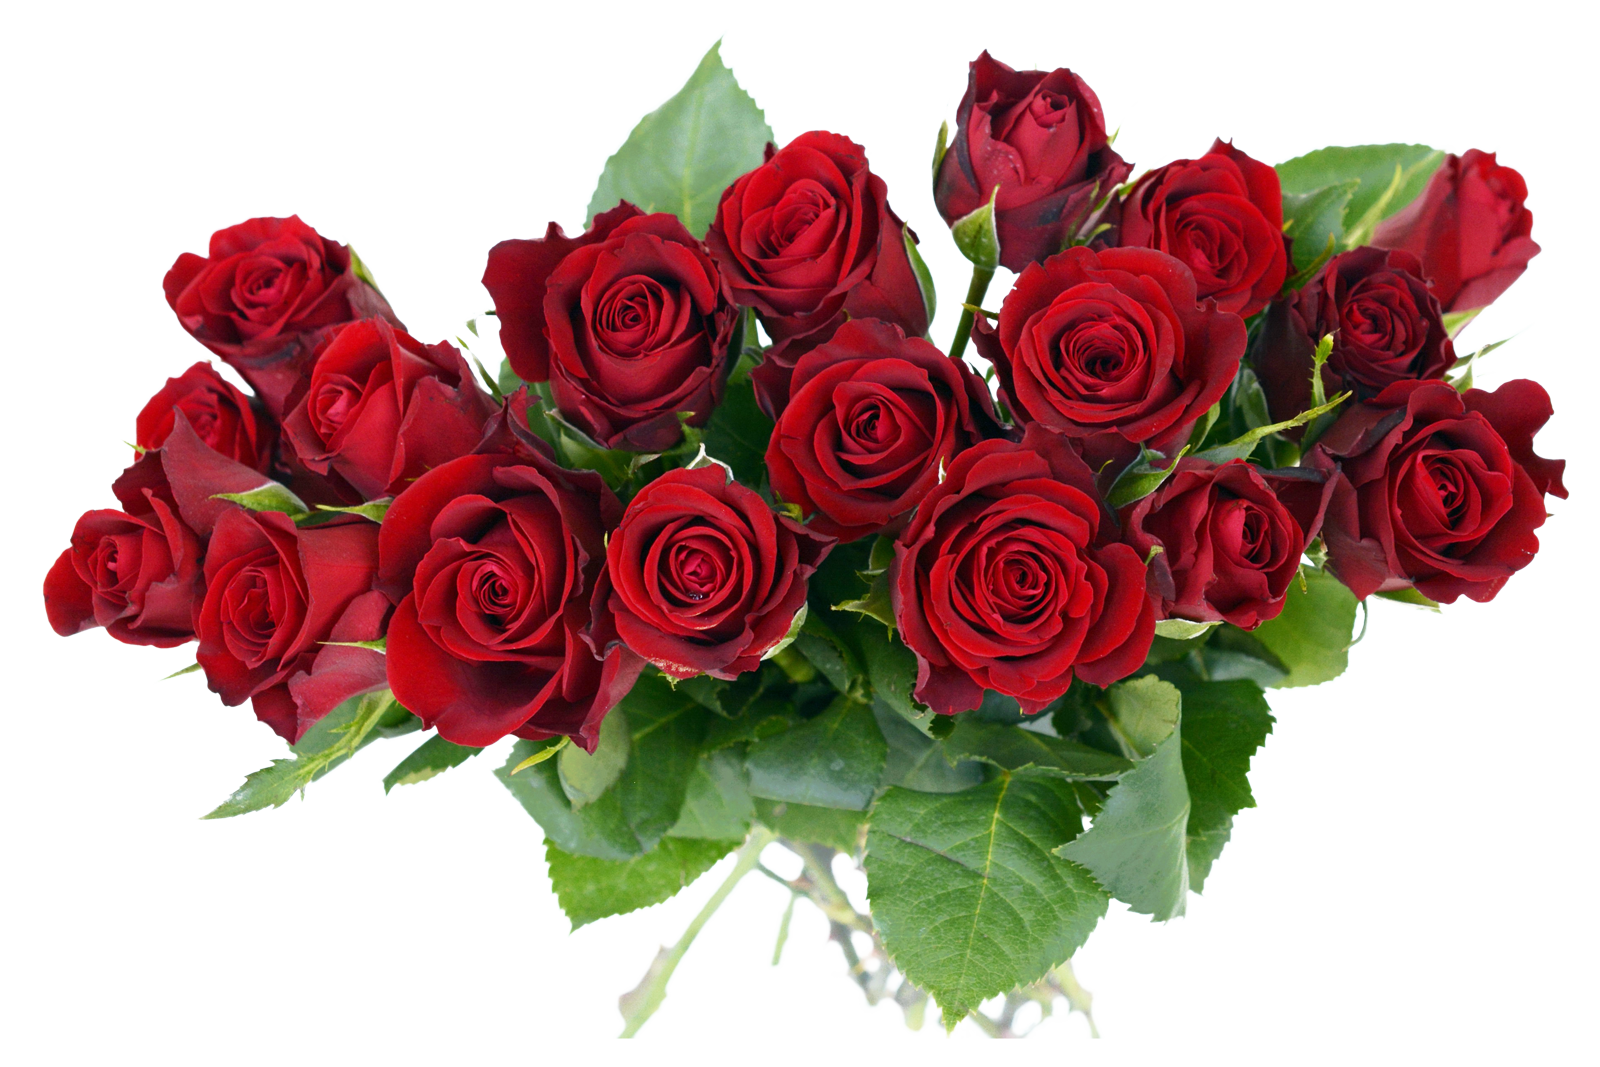 Rose Bouquet PNG Image.